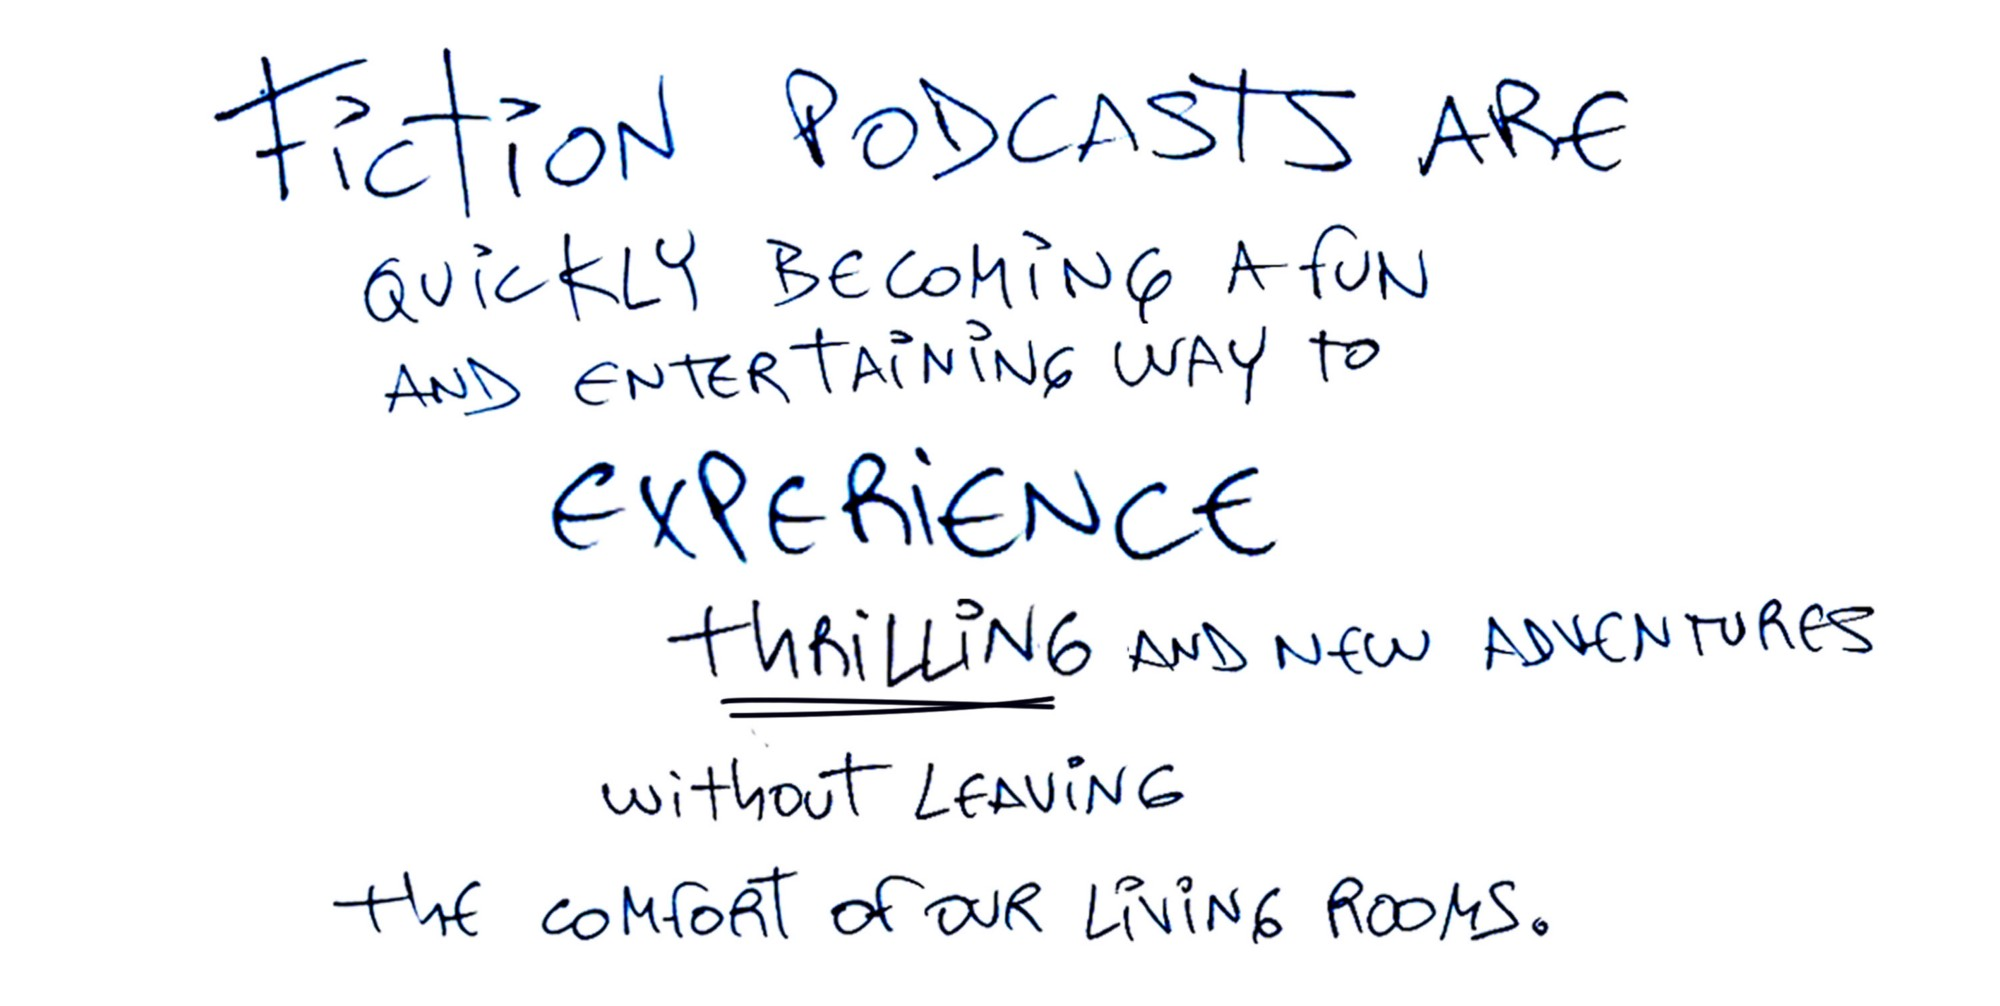 fiction podcasts are quickly becoming a fun and entertaining way to experience thrilling and new adventures